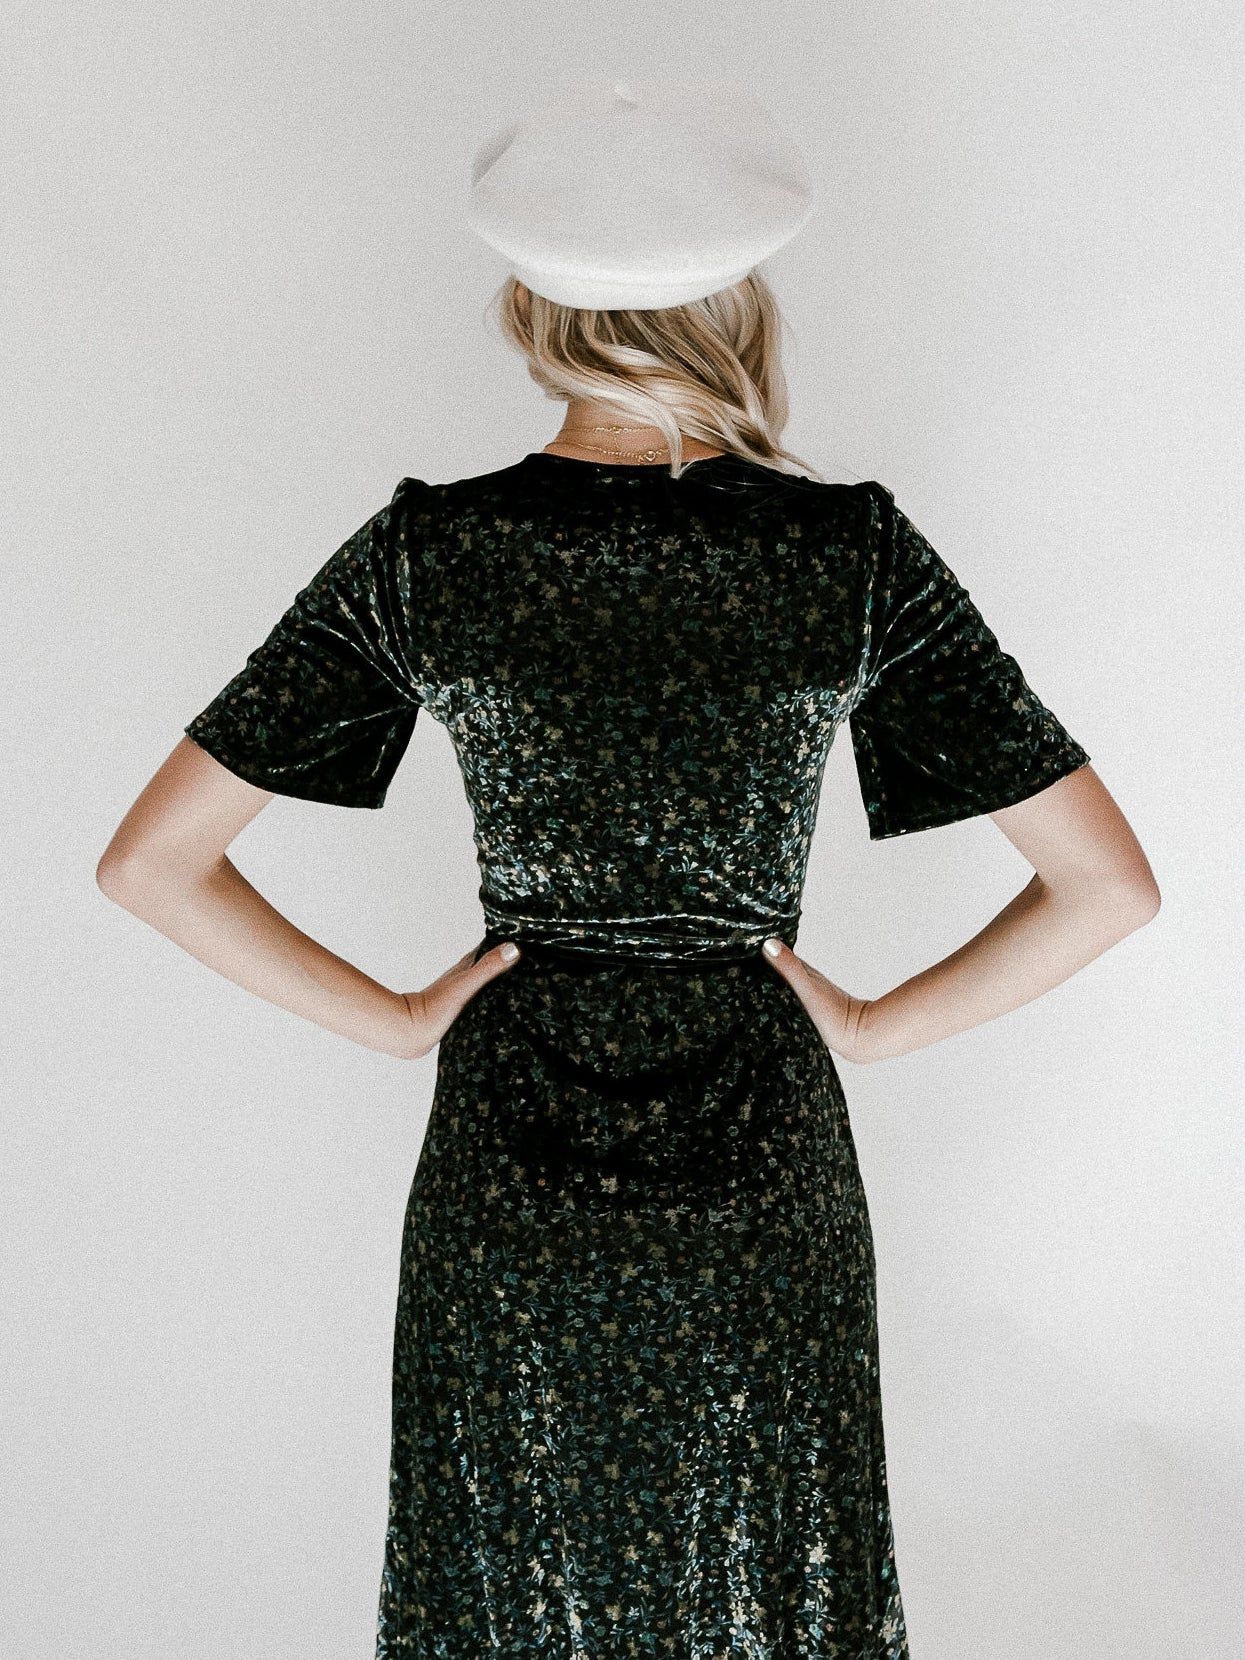 Could It Be You Velvet Dress